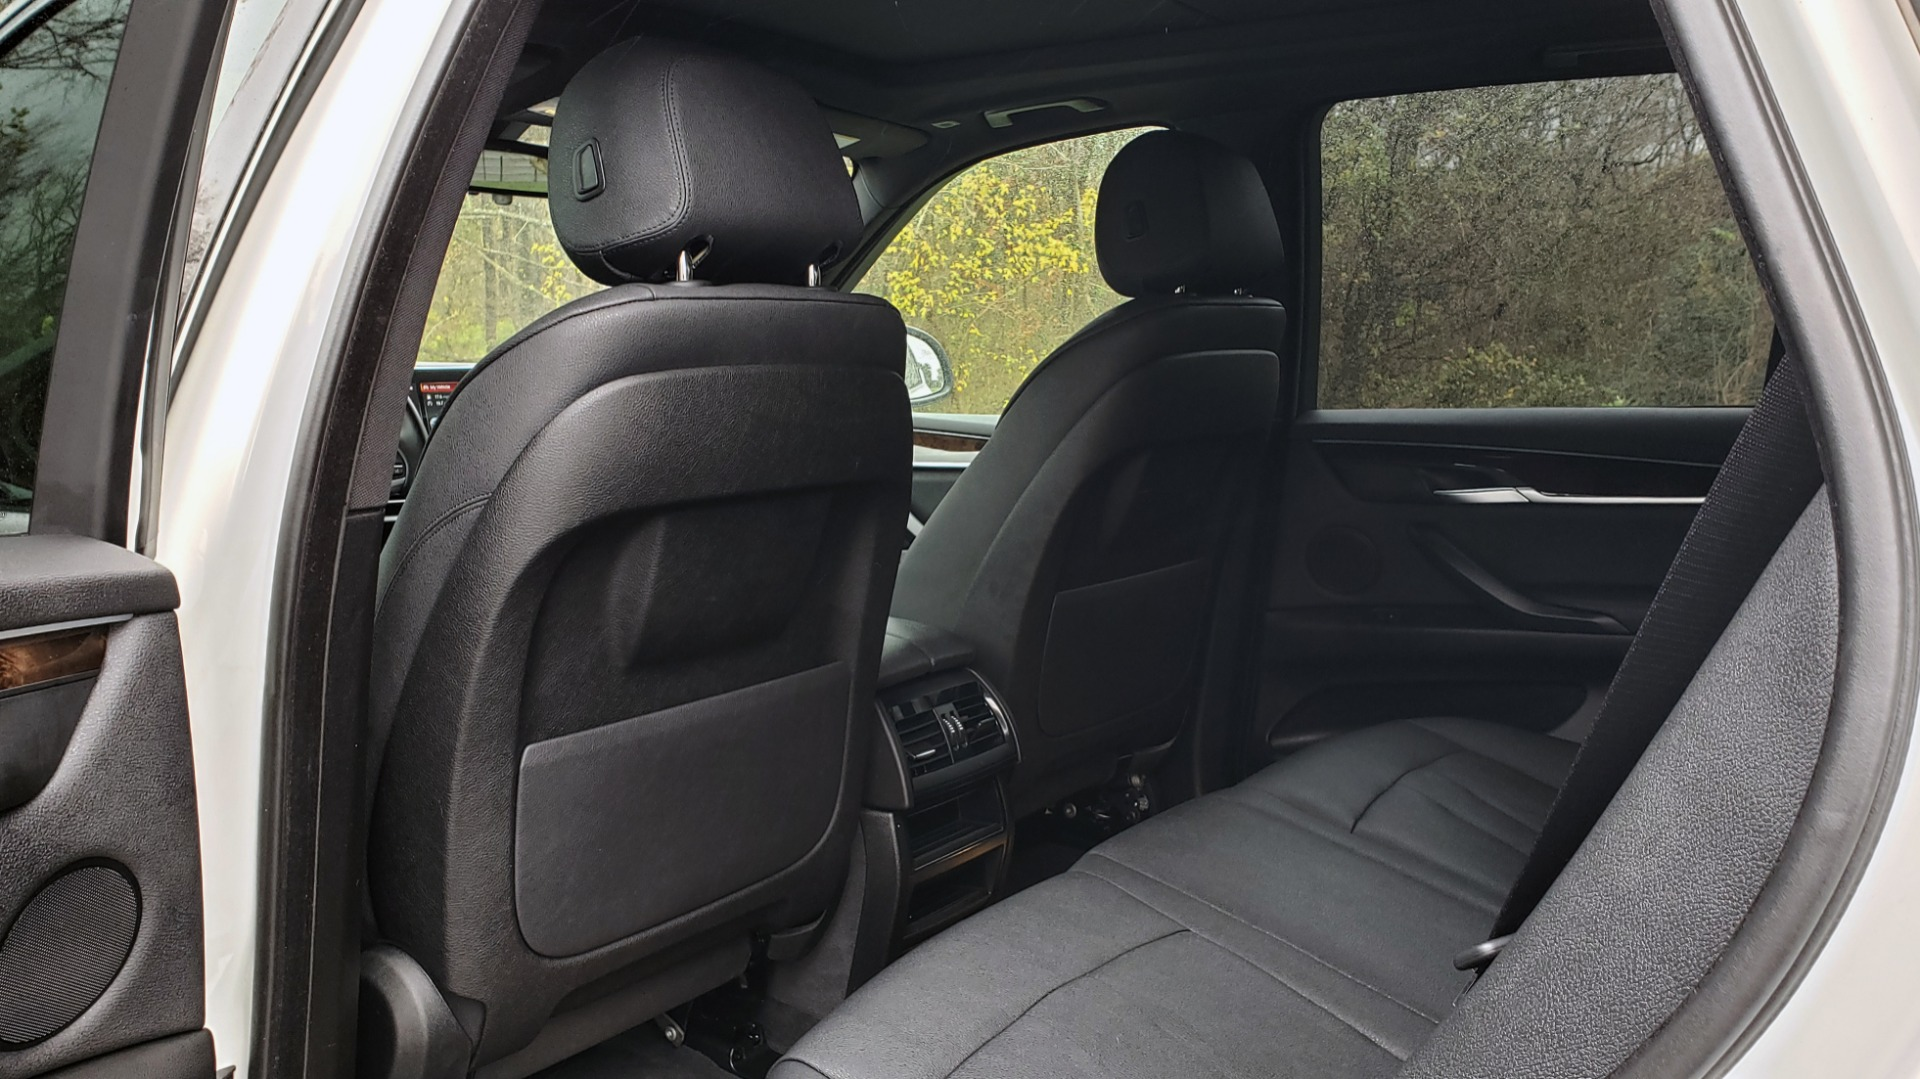 Used 2018 BMW X5 XDRIVE35I / AWD / NAV / HTD STS / SUNROOF / REARVIEW for sale Sold at Formula Imports in Charlotte NC 28227 61